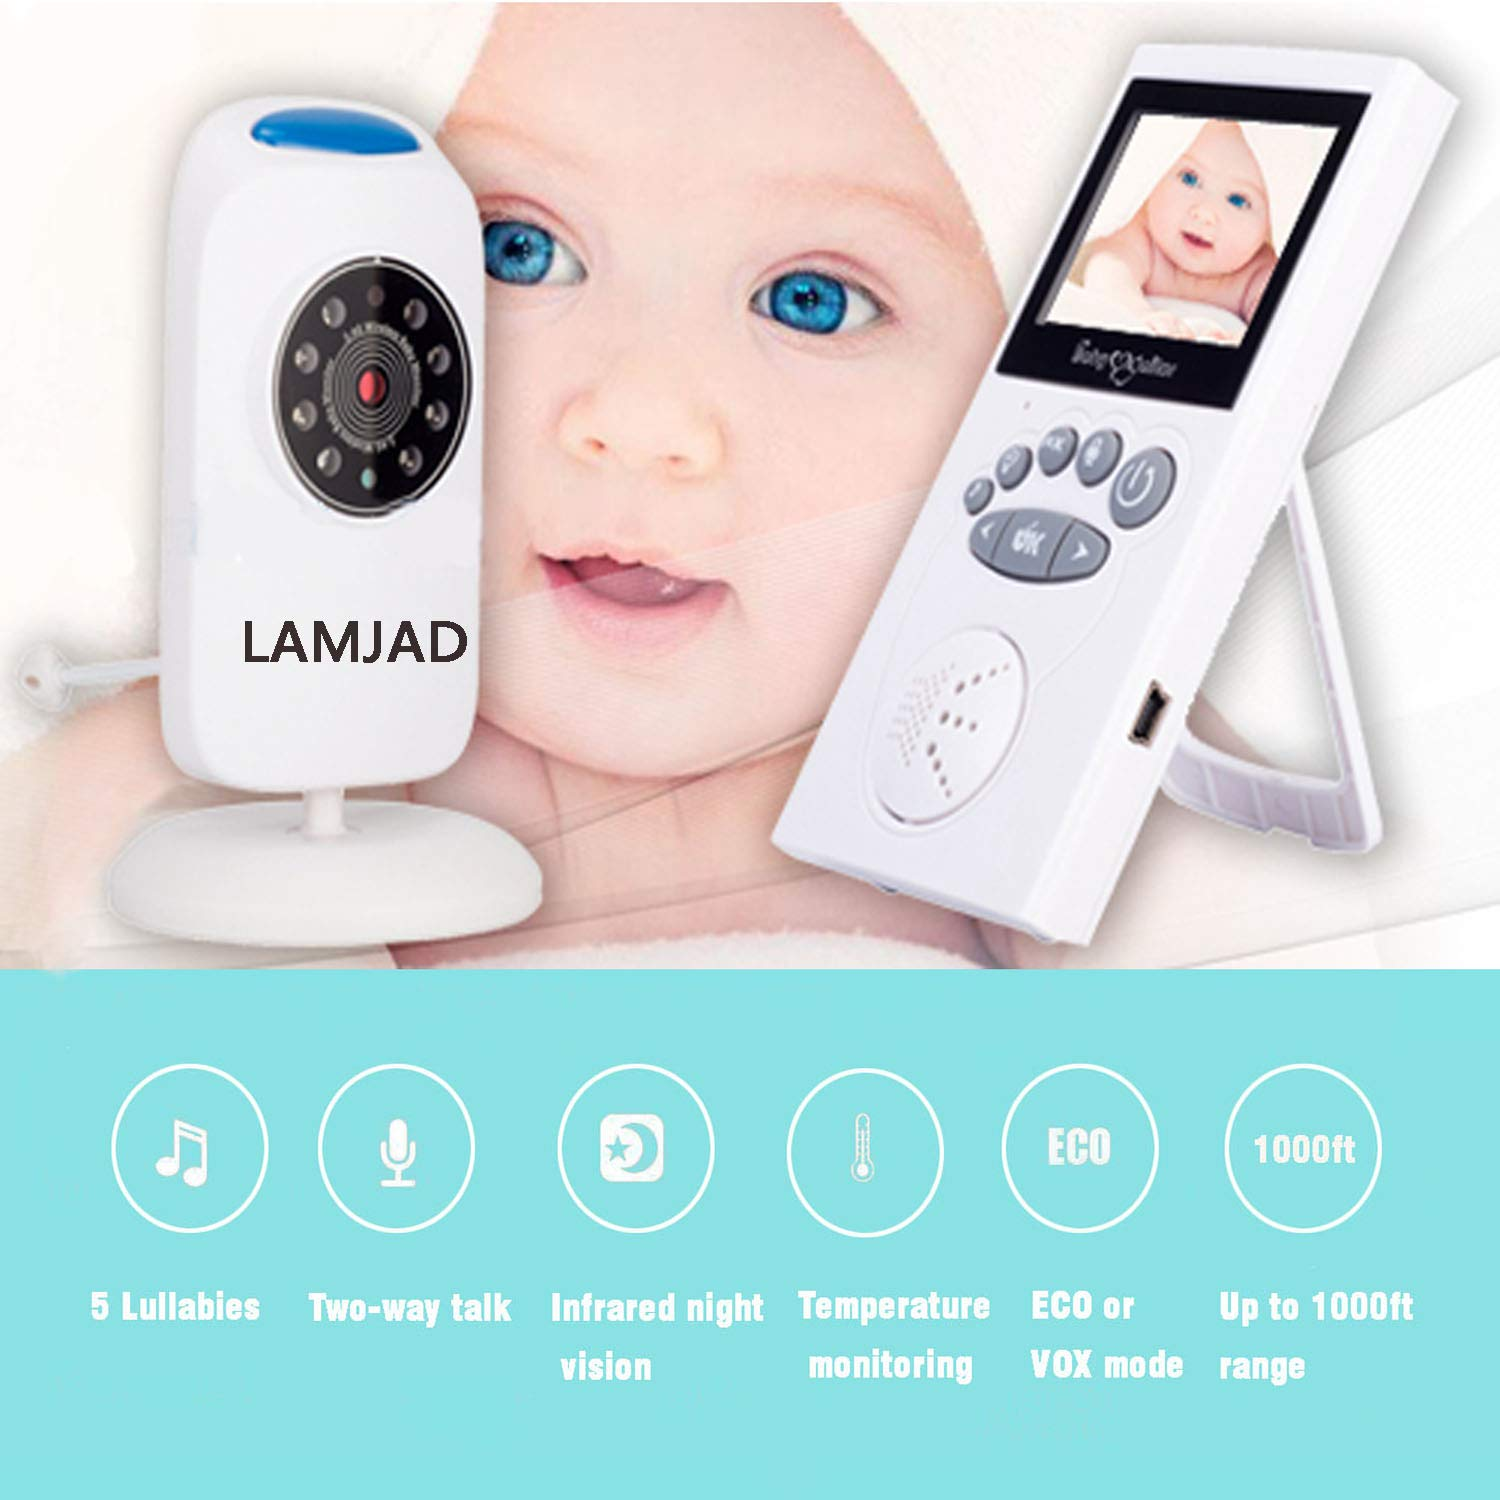 Baby Monitor with Camera, LAMJAD Video Baby Monitor with 1000ft Transmission Range, Infrared Night Vision, Two Way Talk, VOX, 5 Lullabies, HD Display, Temperature Sensor, High Capacity Battery